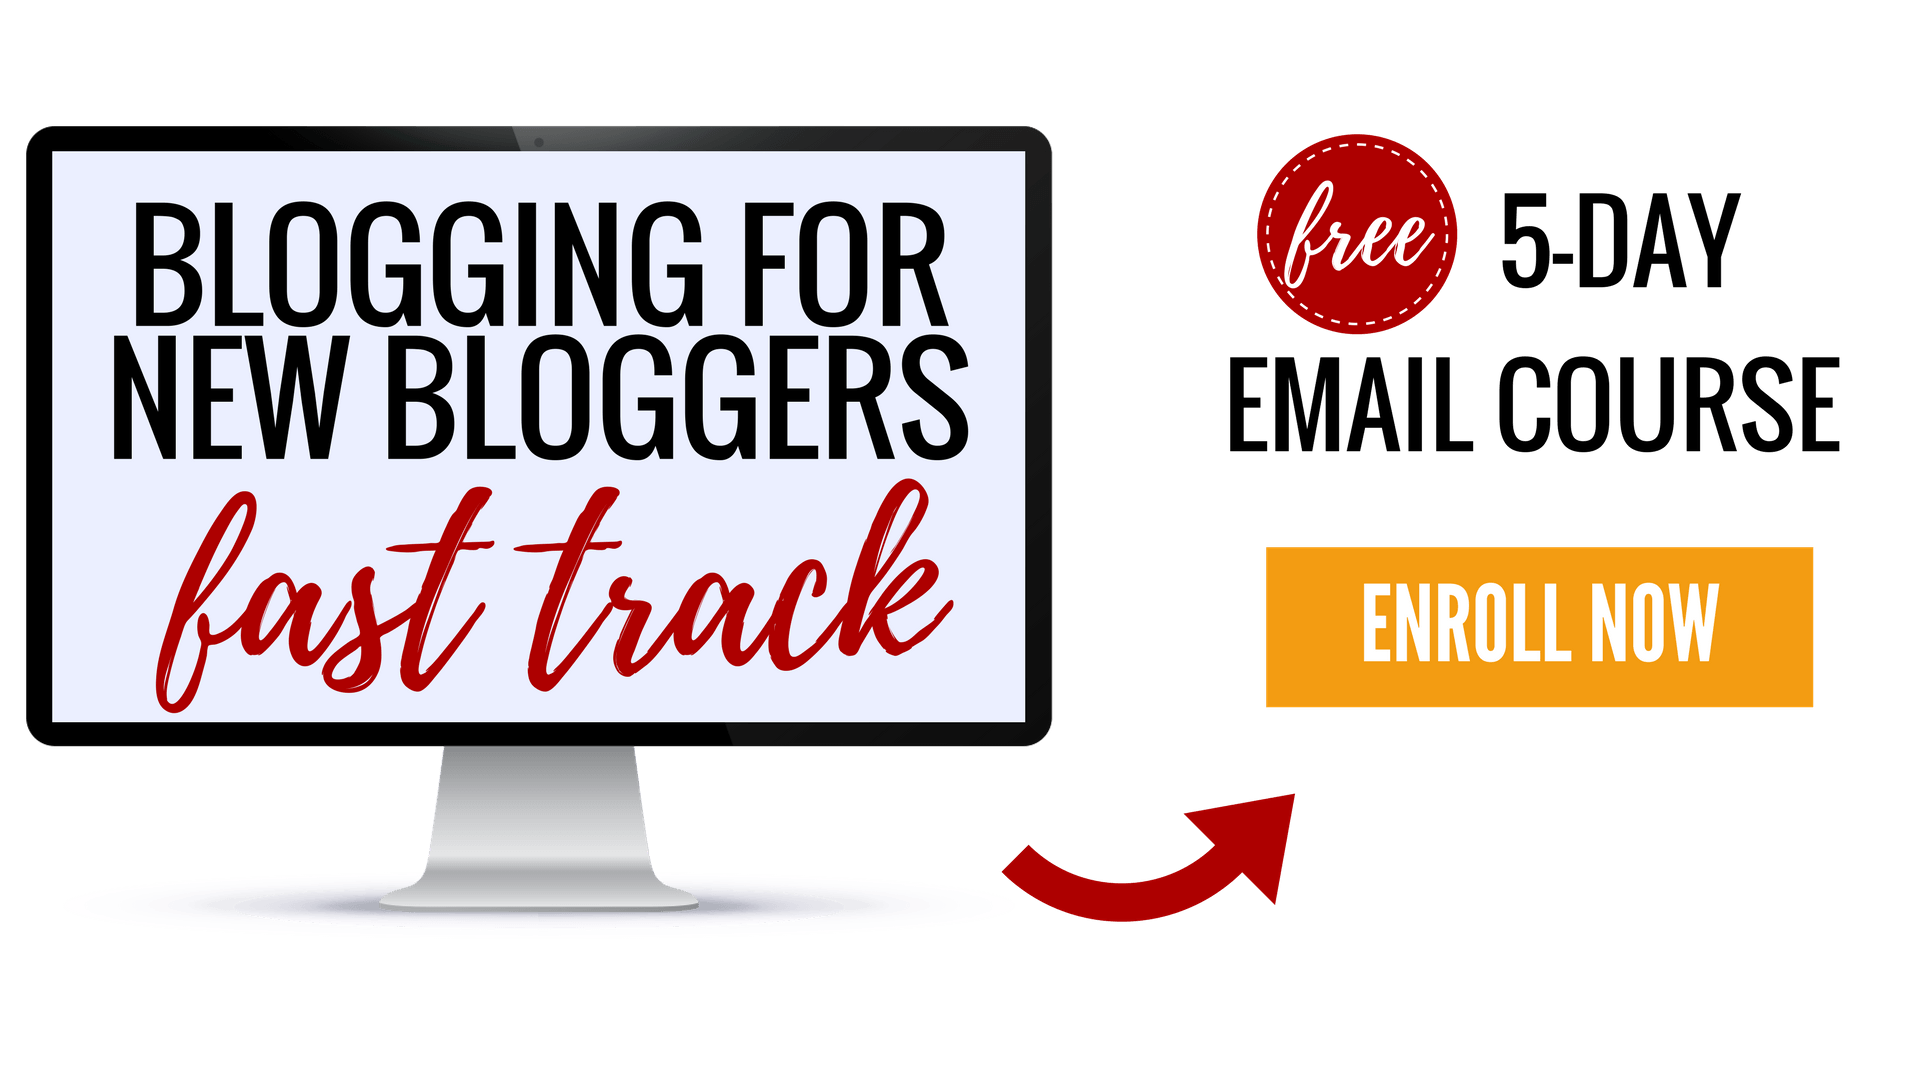 Blogging for new bloggers fast track - free 5-day email course